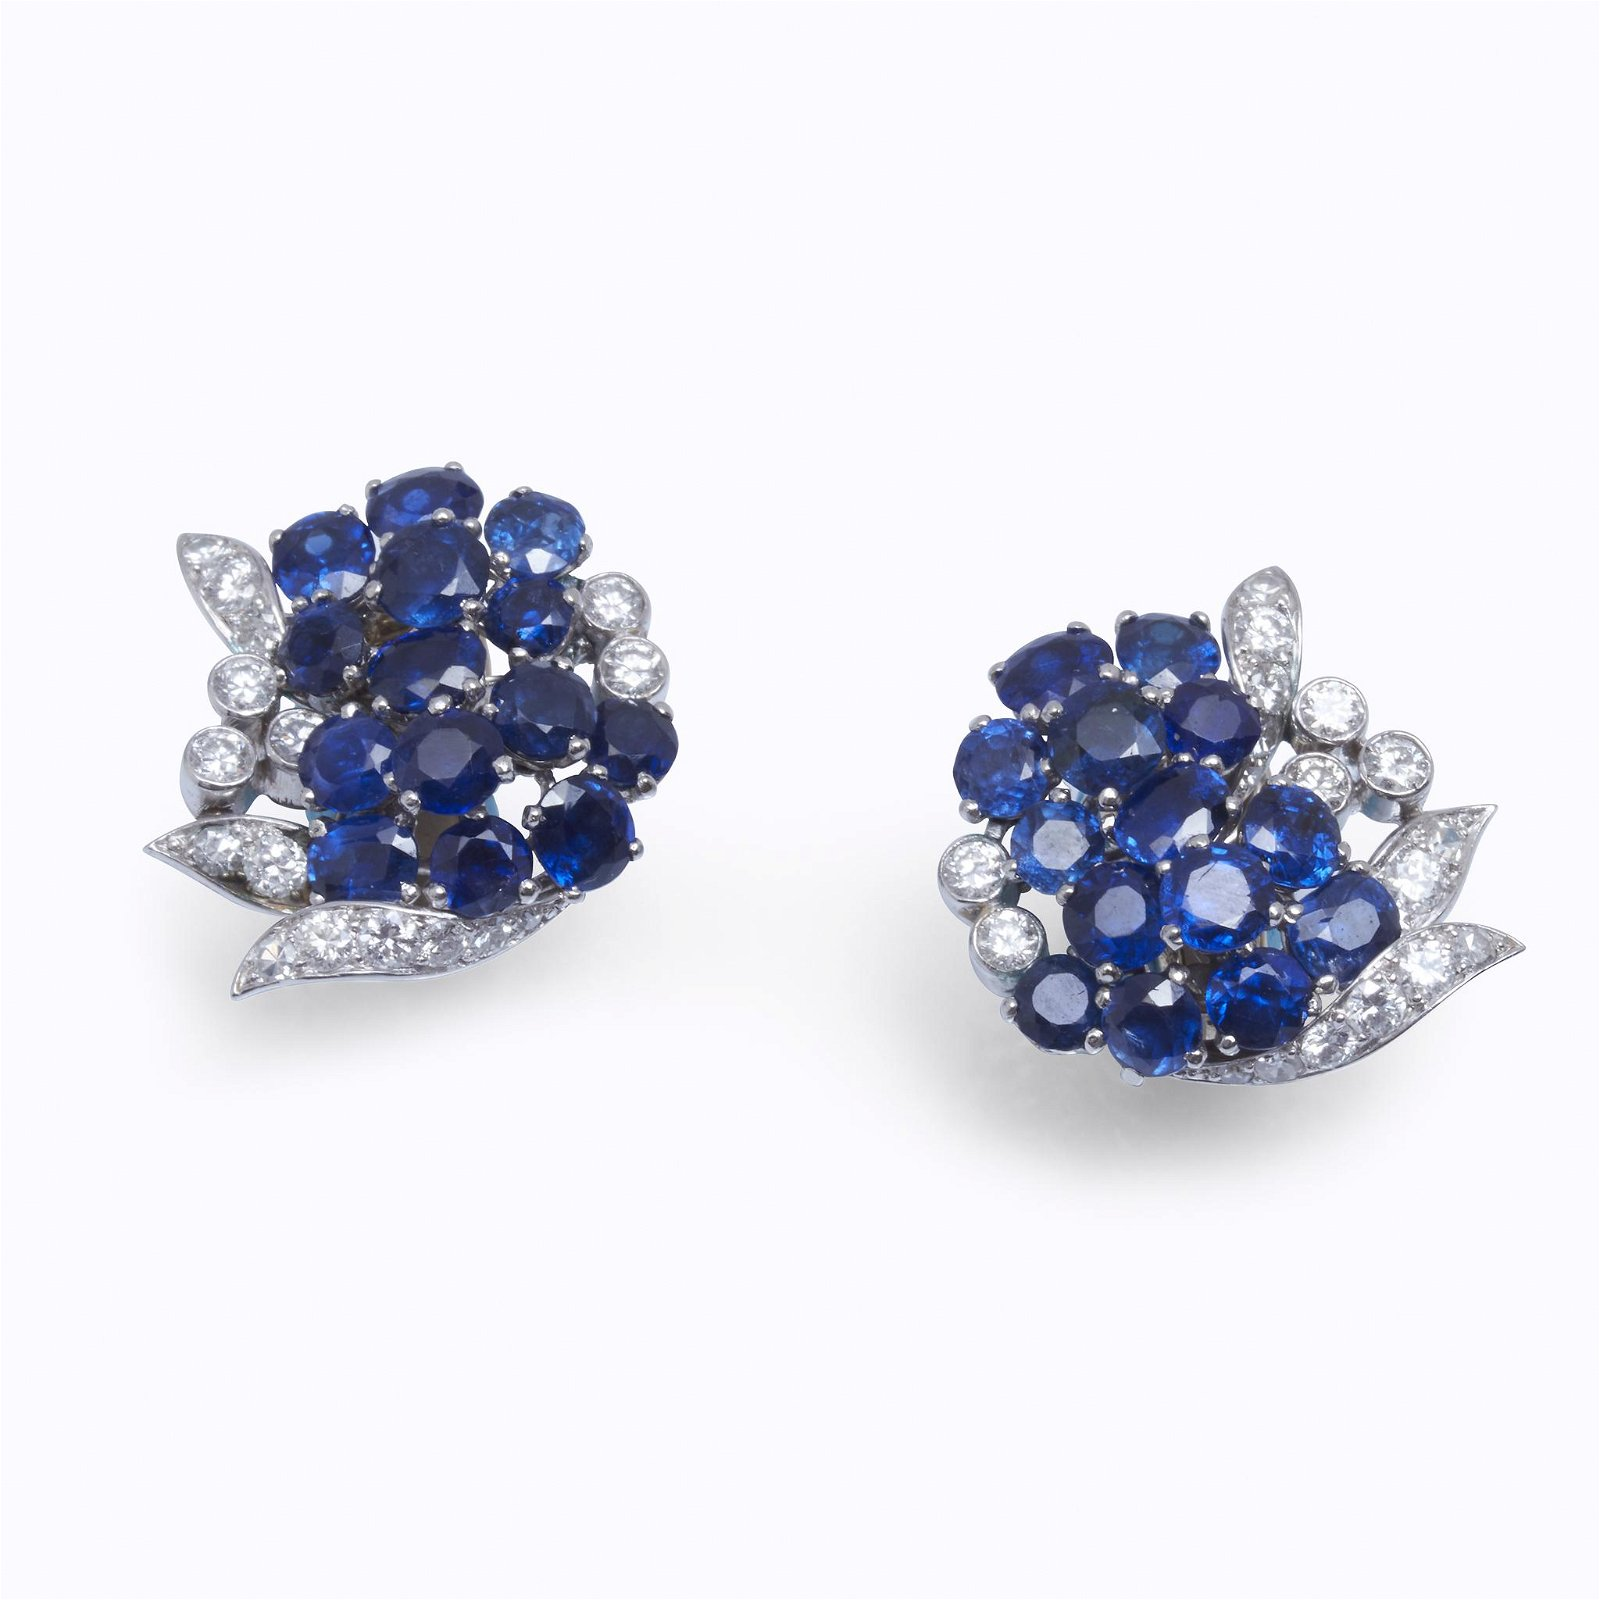 A pair of sapphire, diamond, and platinum earrings,